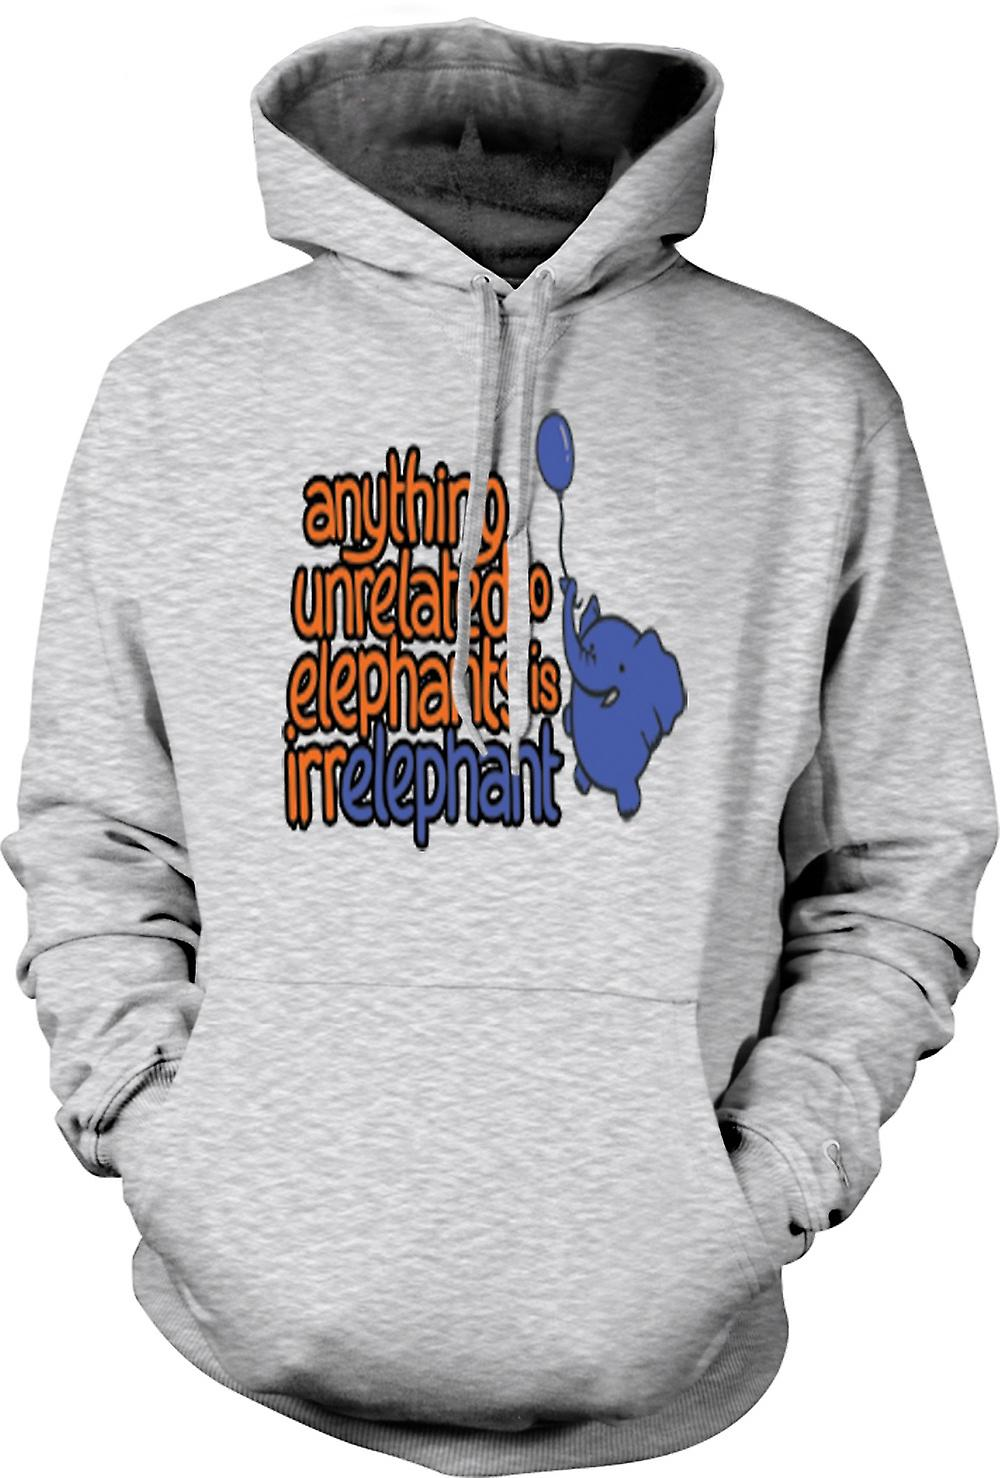 Mens Hoodie - Anything unrelated to Elephants is irelephant